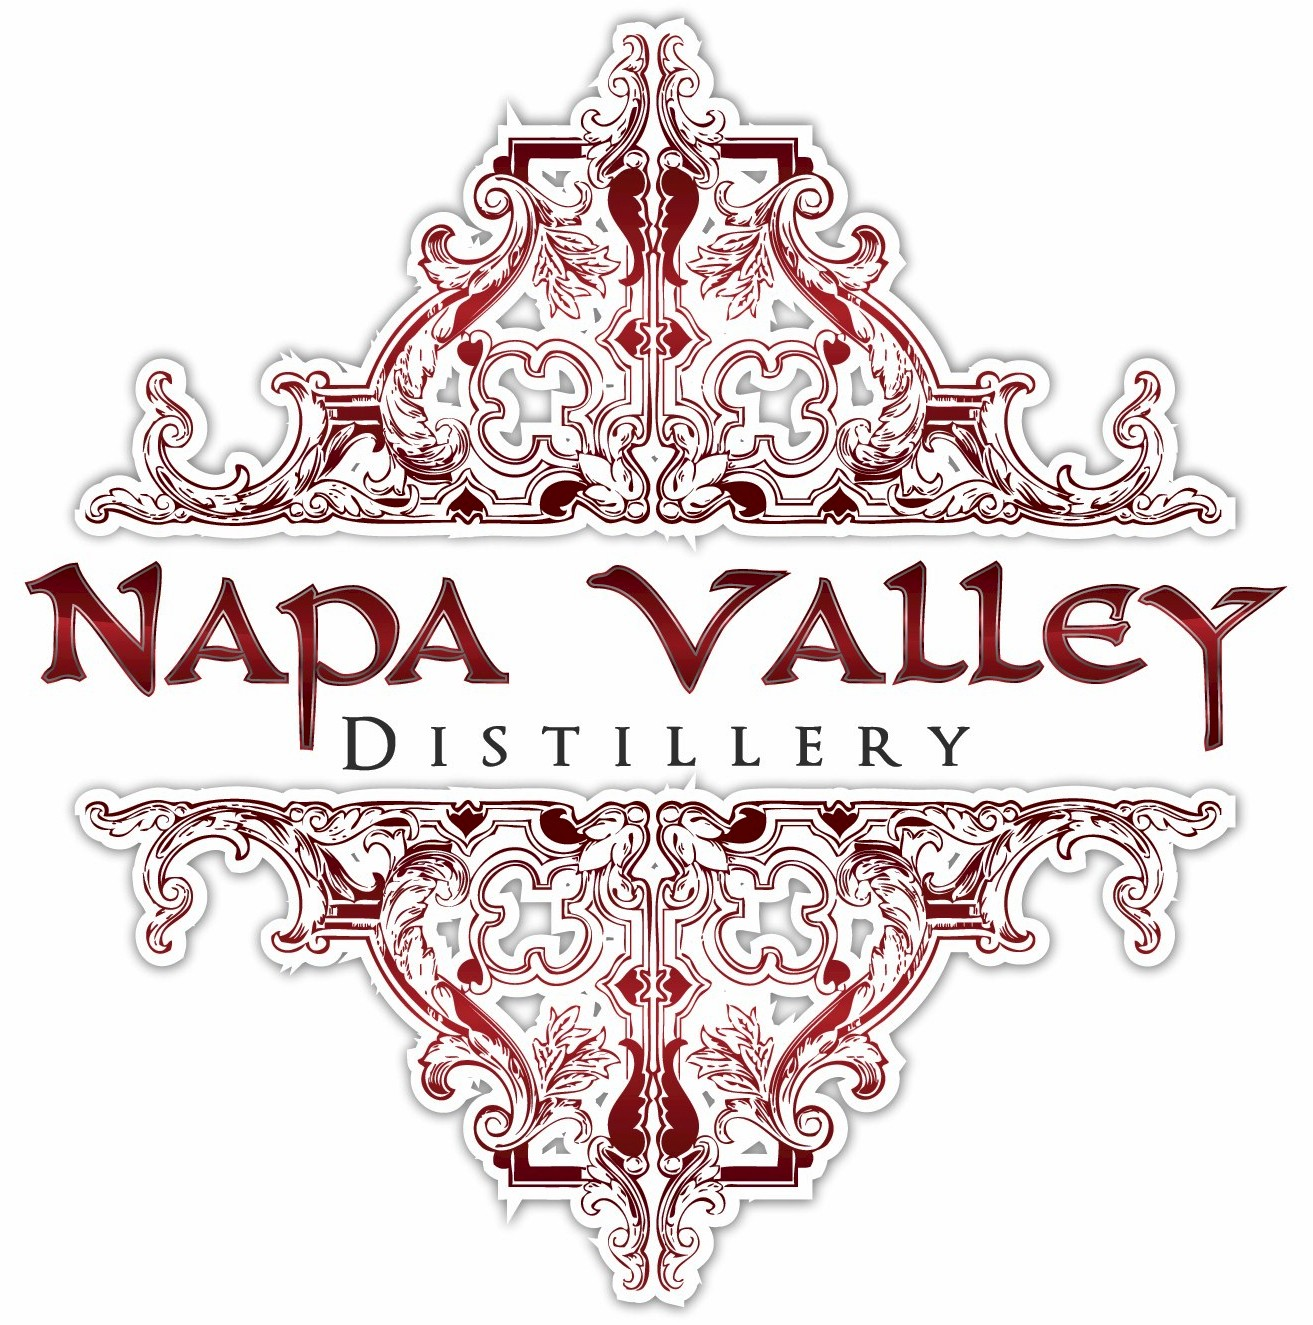 Napa Valley Distillery